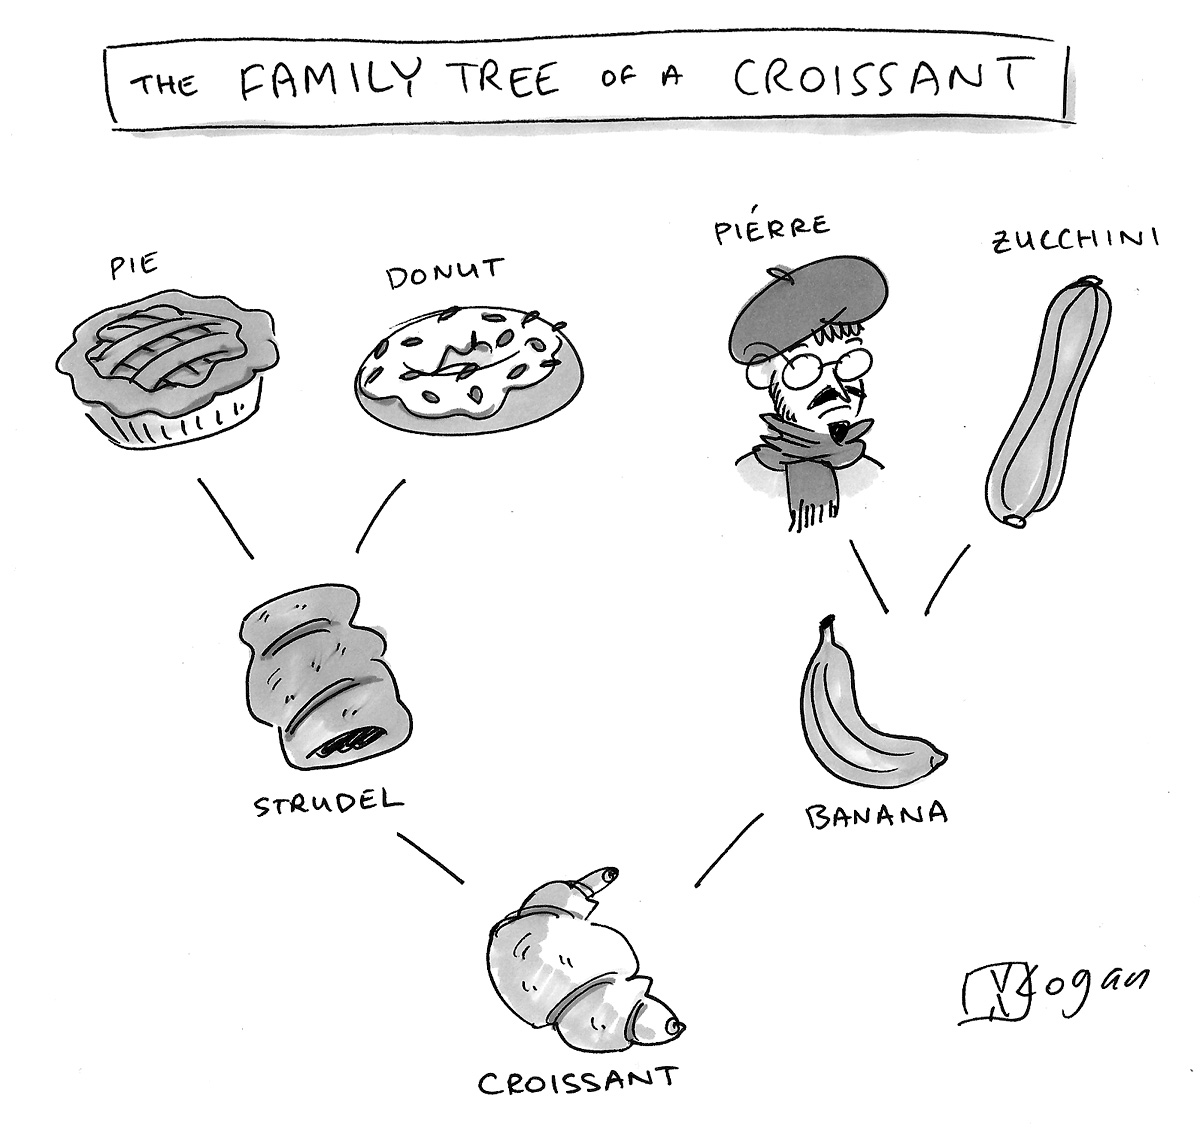 The Family Tree of a Croissant